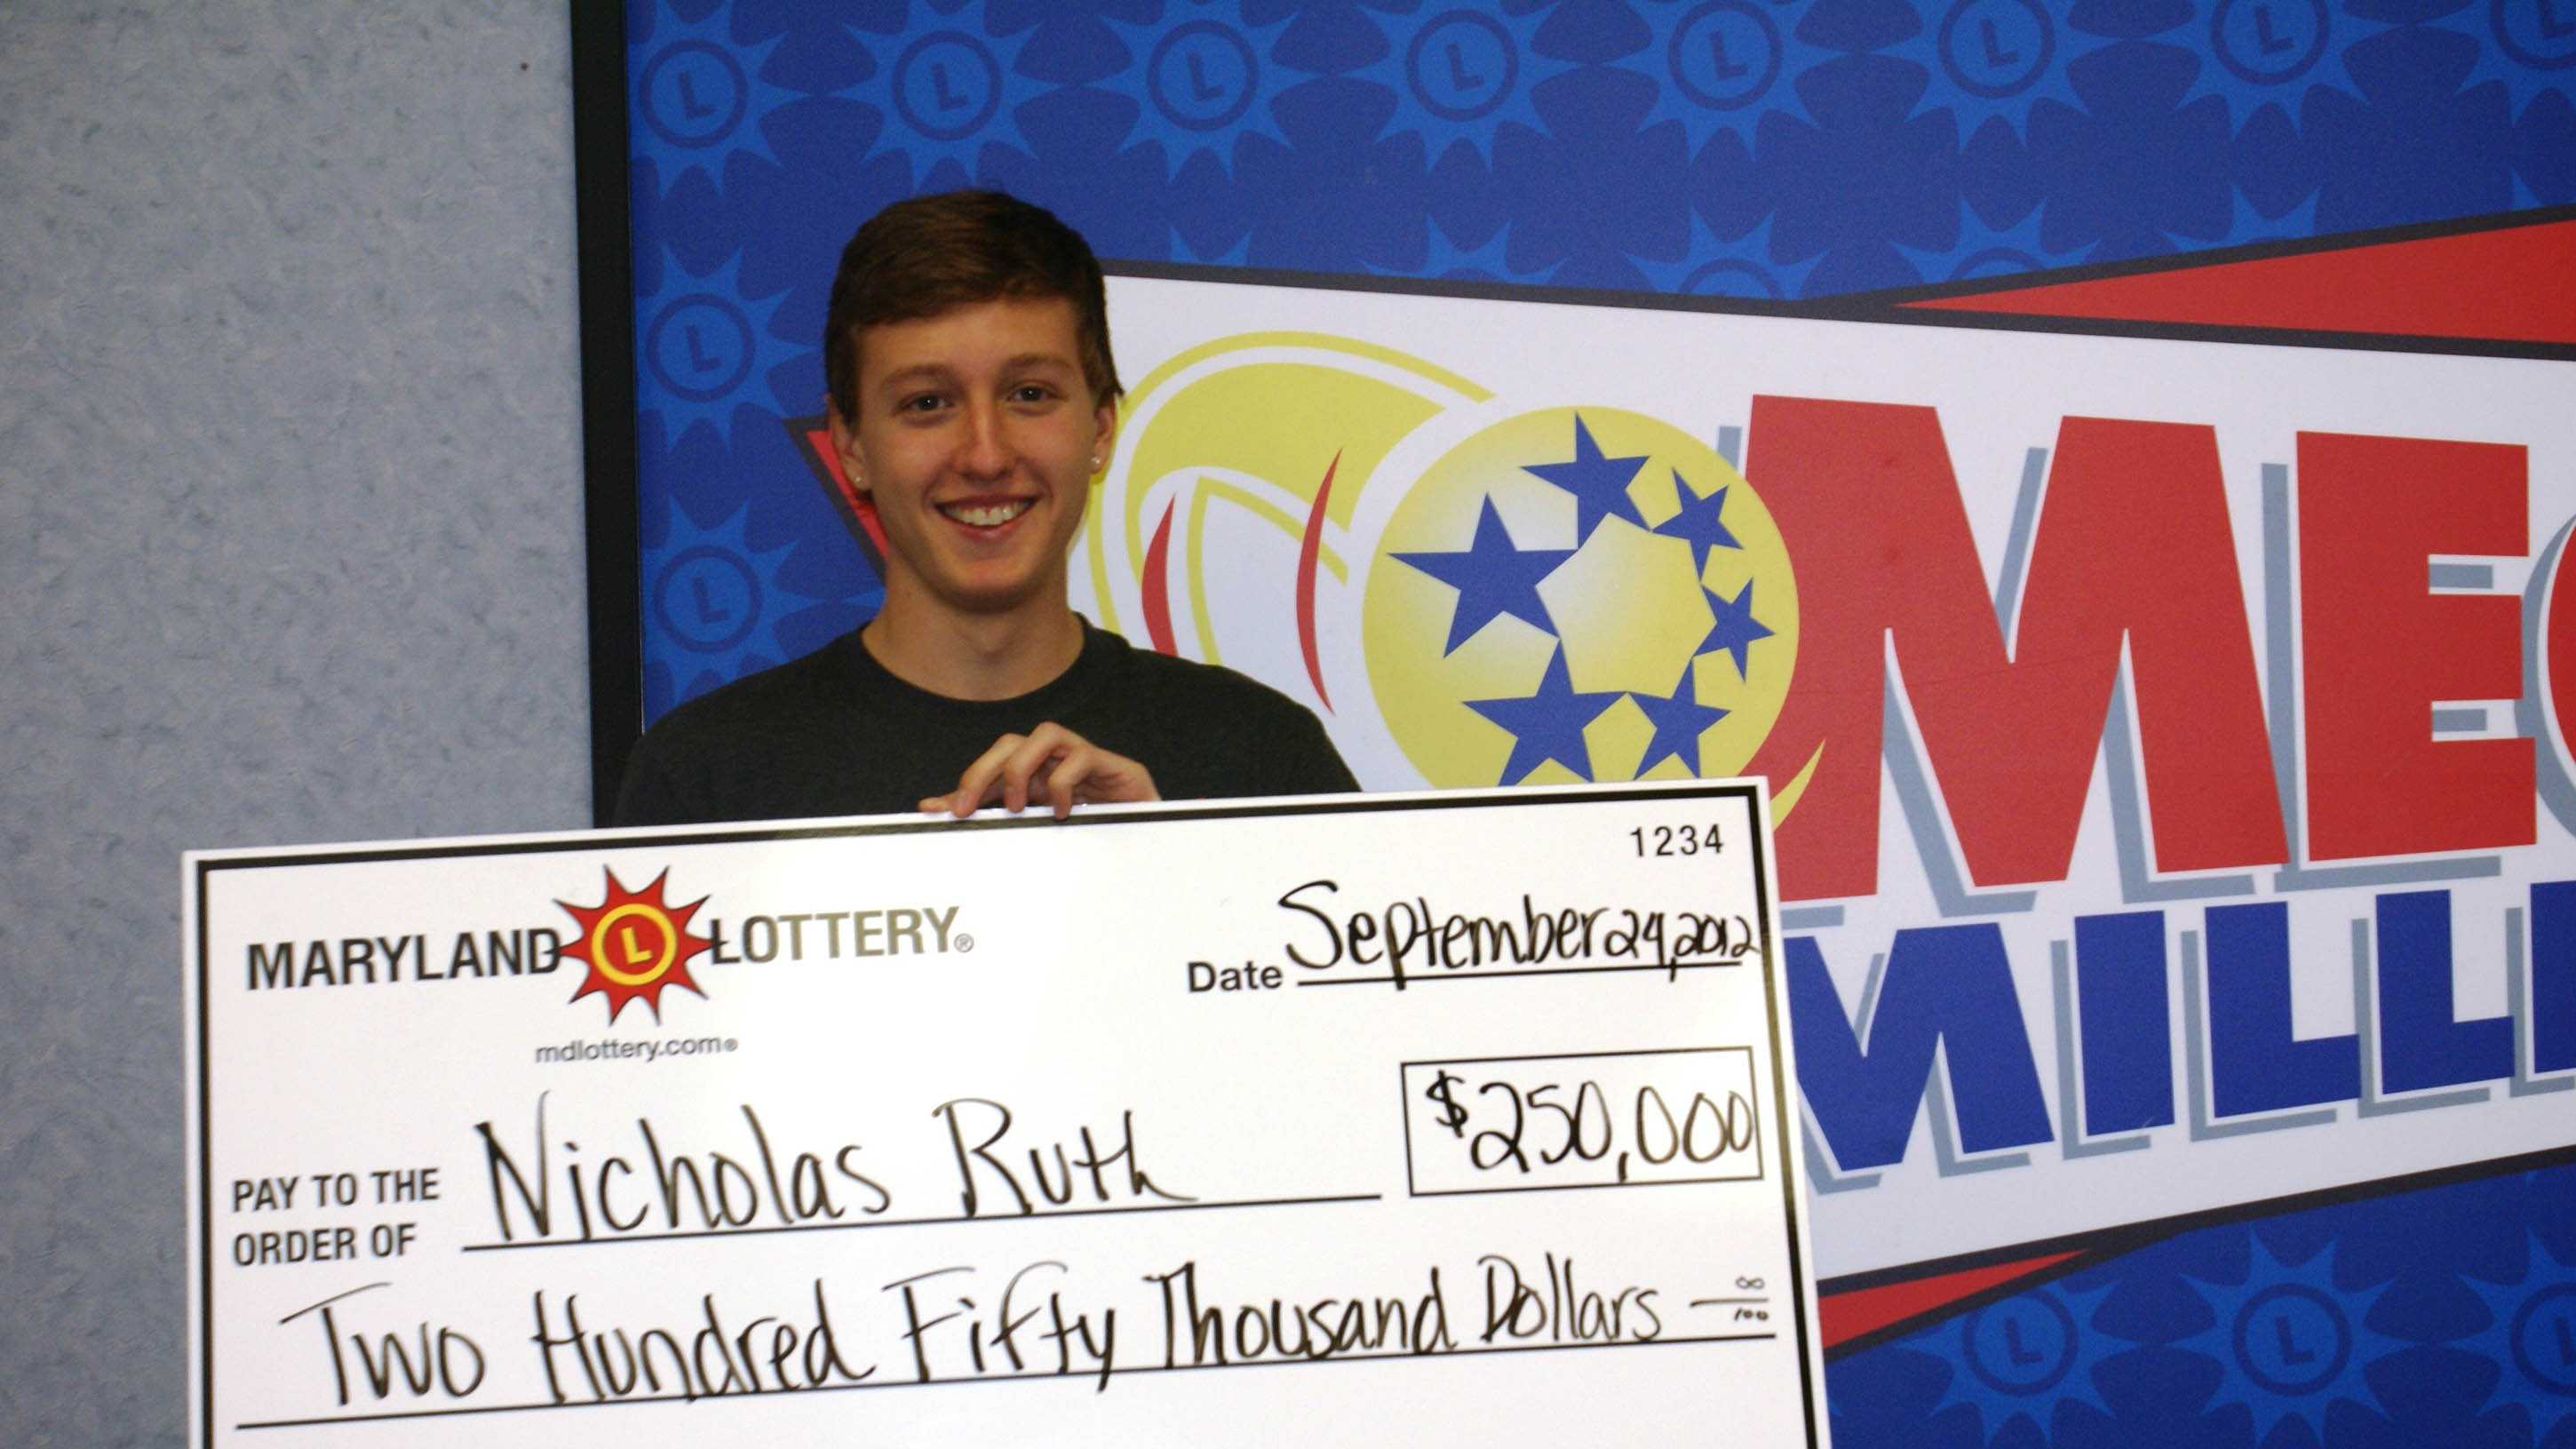 Nick Ruth wins a $250,000 Mega Millions prize from the Maryland Lottery.